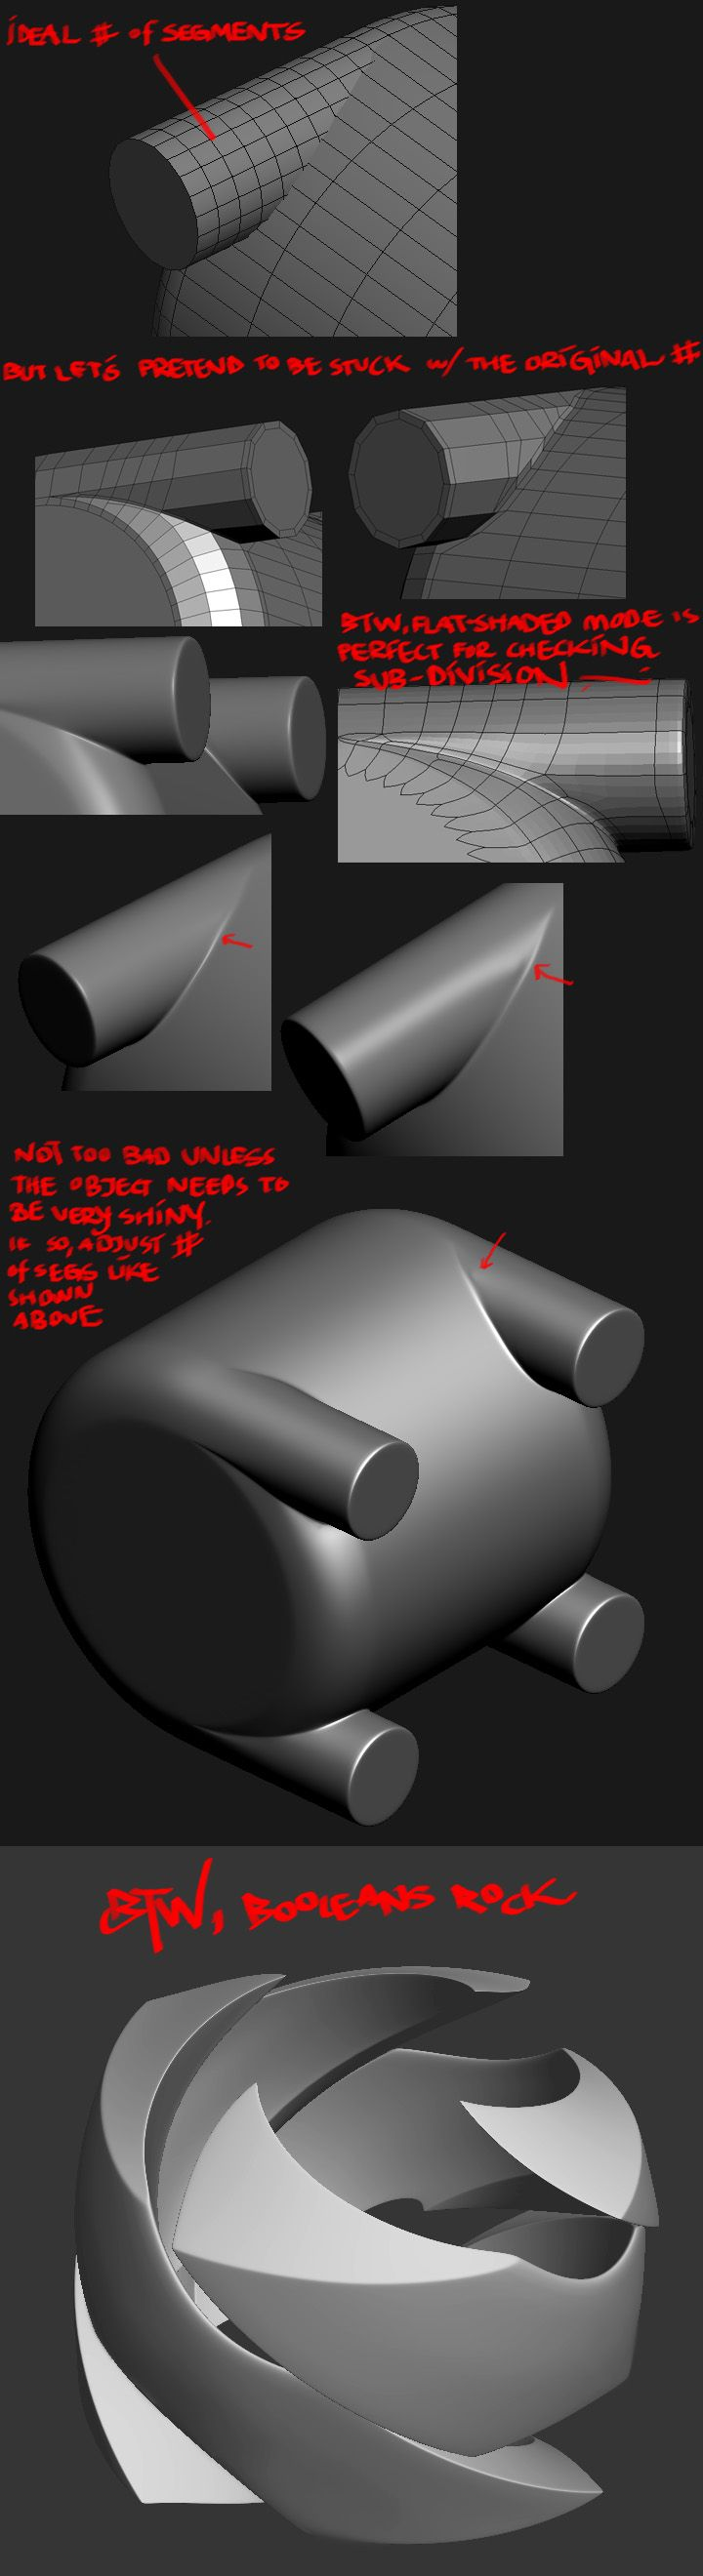 Perplexed still on low/high poly manipulation - Page 2 - Polycount Forum